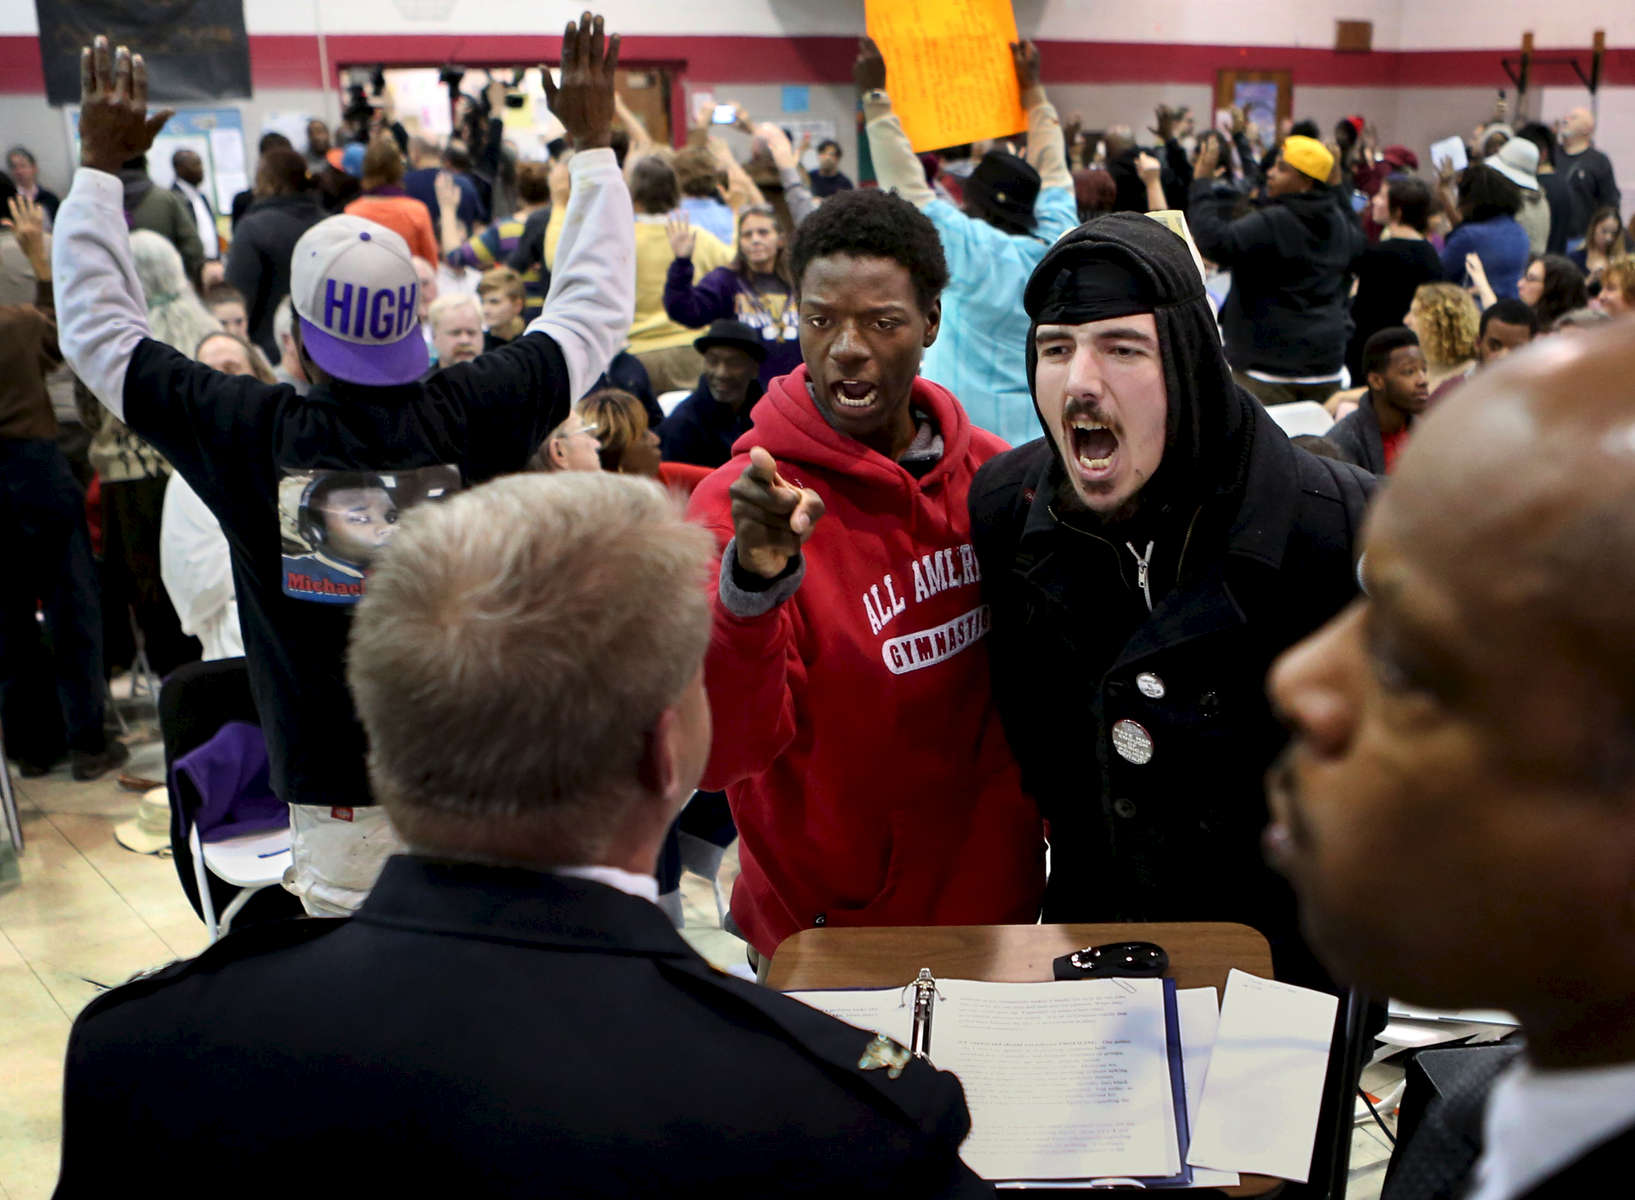 Joshua Williams (left center) and Nicholas Austin Jackson shout at St. Louis police chief Sam Dotson (left) as he tries to give a presentation during the second meeting of the Ferguson Commission in St. Louis on Monday, Dec. 8, 2014.  Some in the crowd stood and turned their back on Dotson as he spoke, others heckled him. Ferguson Commission member and Director of the Missouri Department of of Public Safety Dan Isom is pictured to the right. Isom was the St. Louis chief of police before Dotson.  The Ferguson Commission was created by the governor of Missouri to attempt to come up with solutions for the issues a raised by the Ferguson protests.